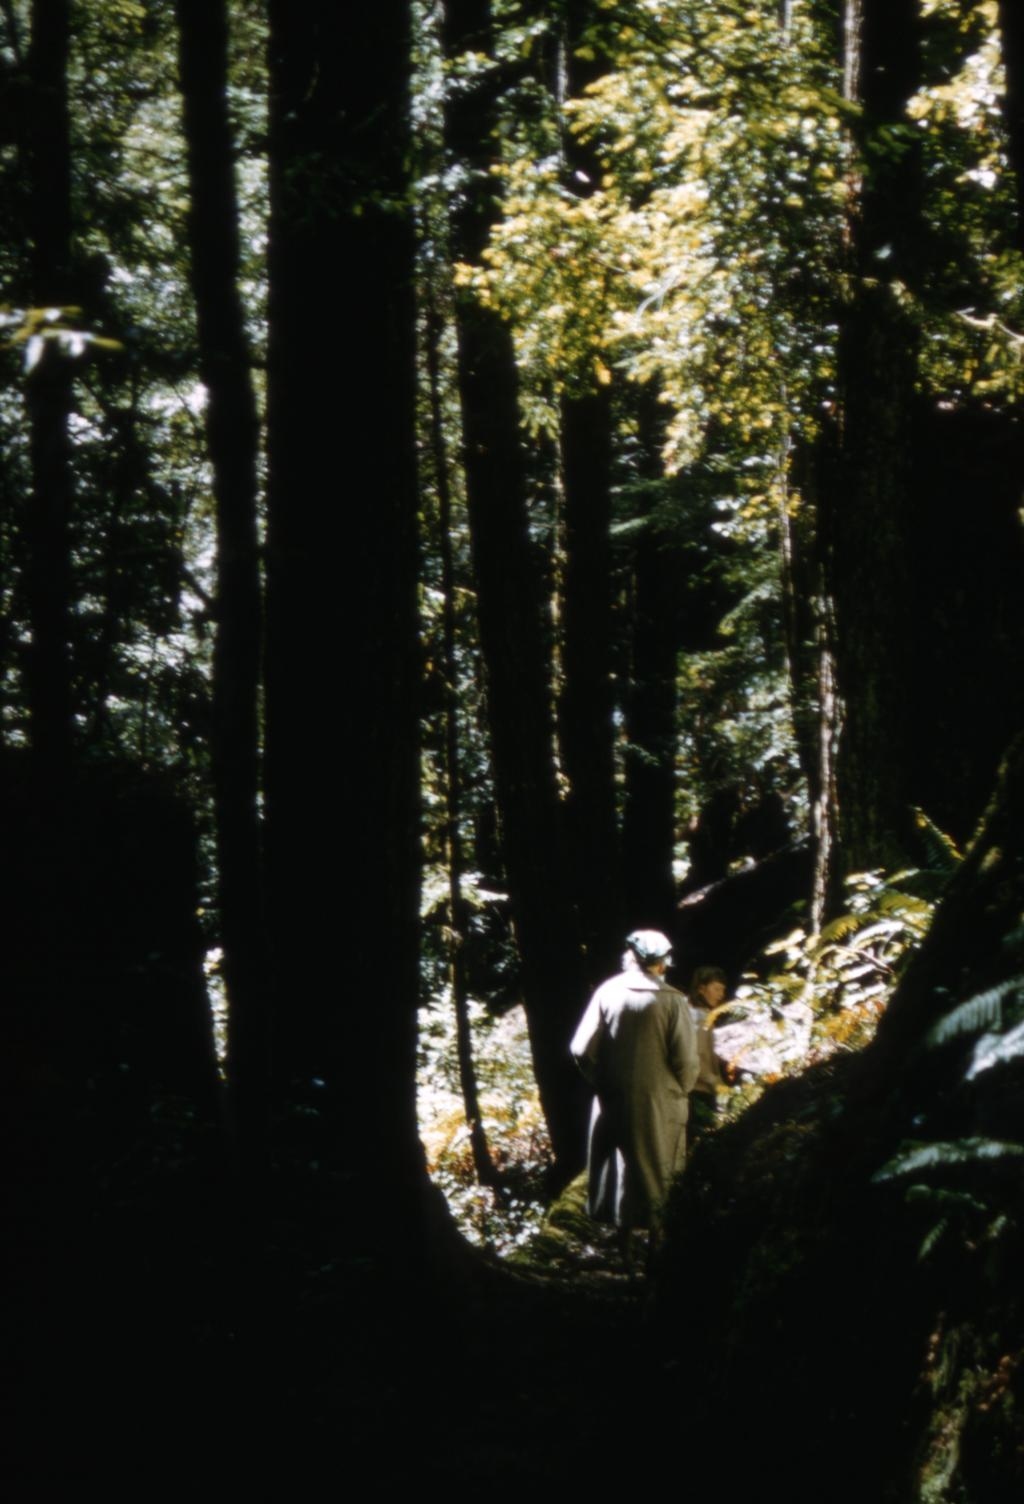 May T. Watts walking among trees in a forest, possibly in the Great Smoky Mountains. A figure of another person, possibly a child, is visible walking in front of Watts.